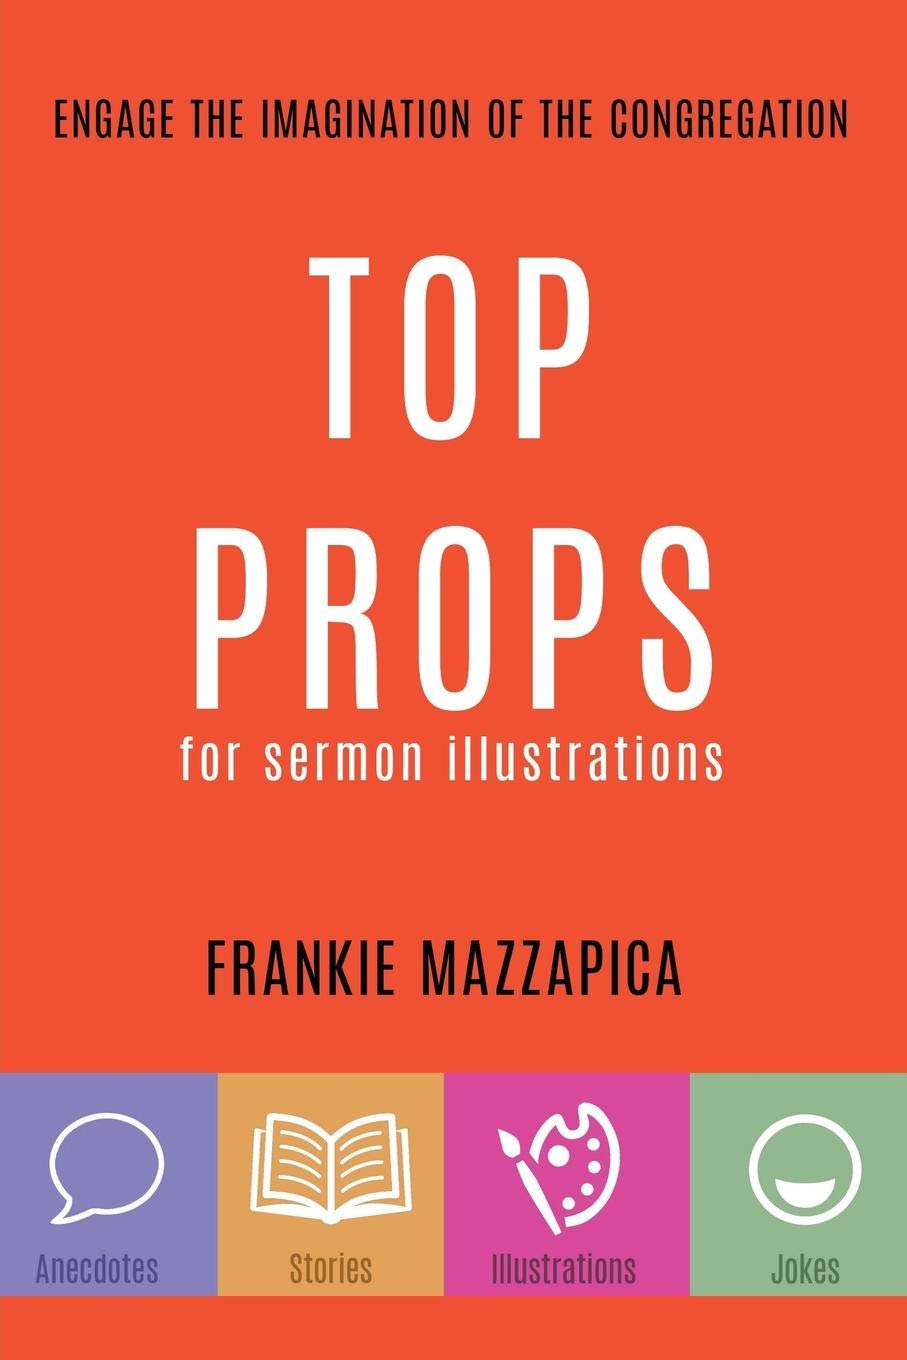 Top Props for Sermon Illustrations: Engage the Imagination of the